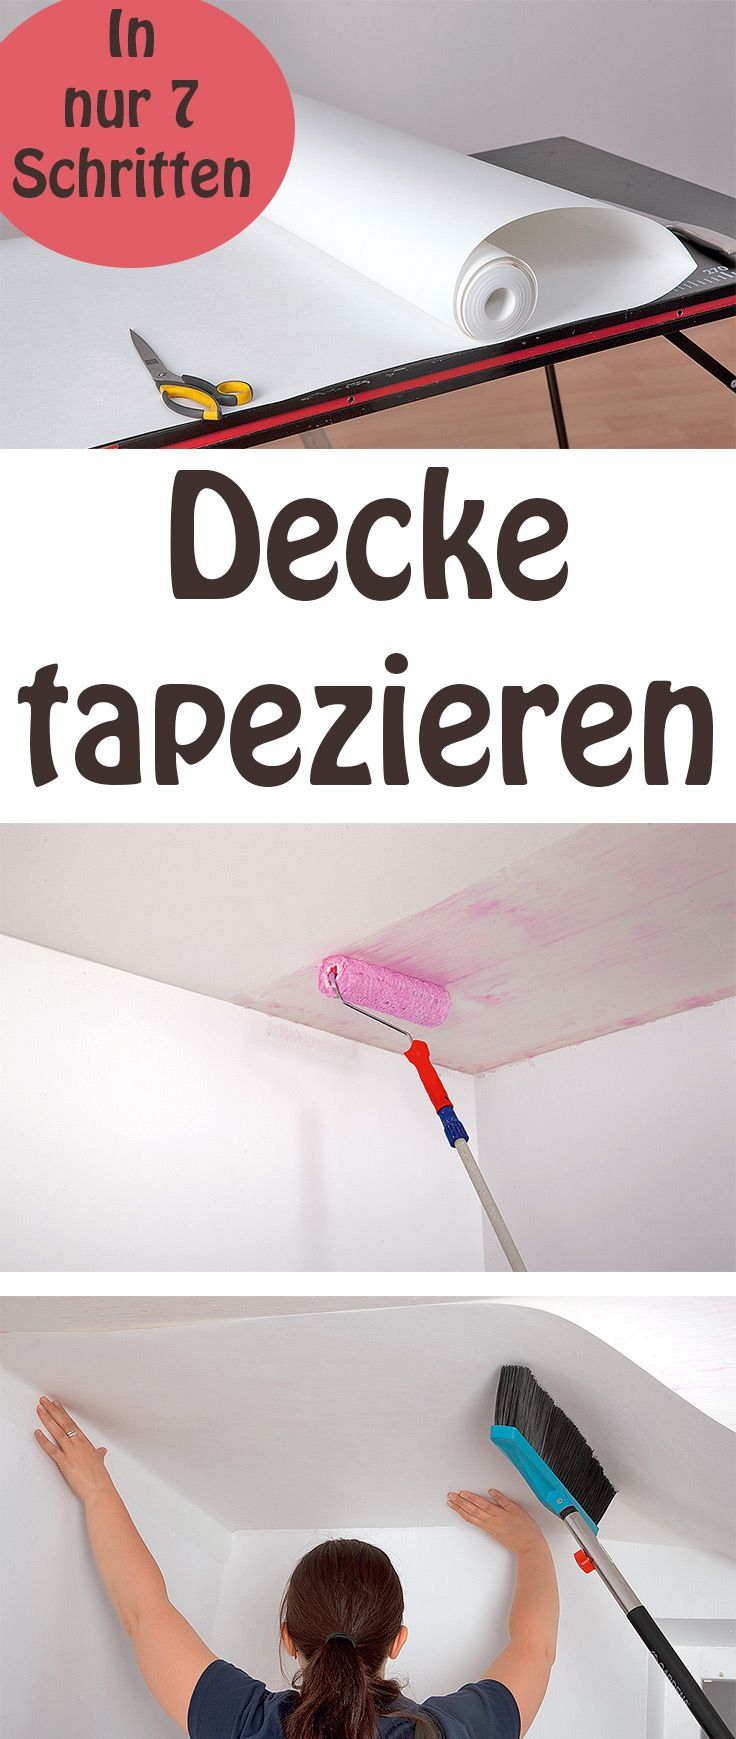 decke tapezieren anleitung cheap decke tapezieren anleitung with decke tapezieren anleitung. Black Bedroom Furniture Sets. Home Design Ideas